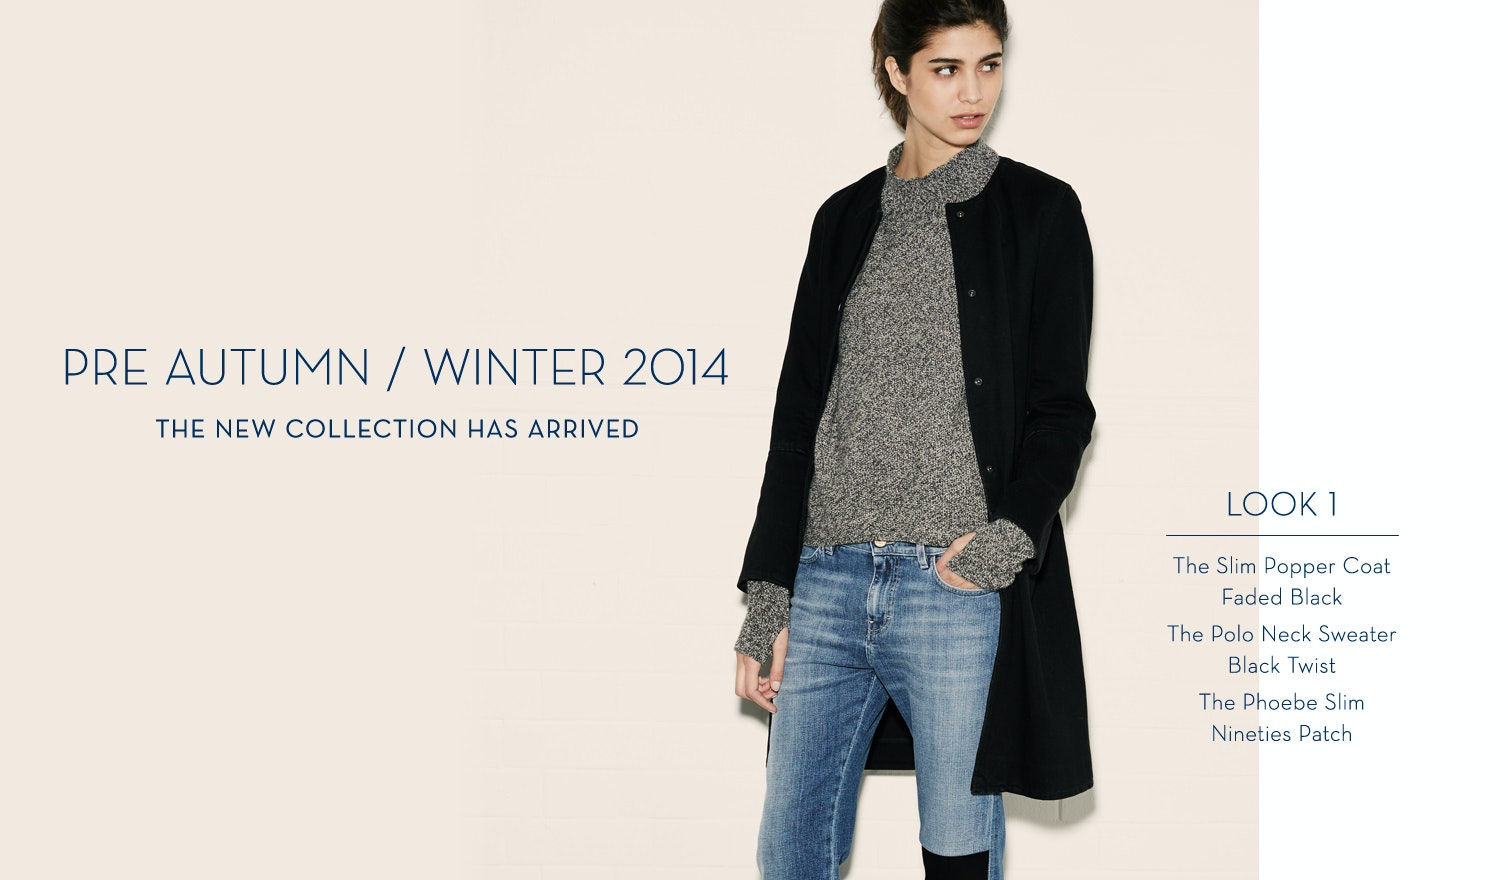 AW14-Pre-Launch-Pt1-header-1